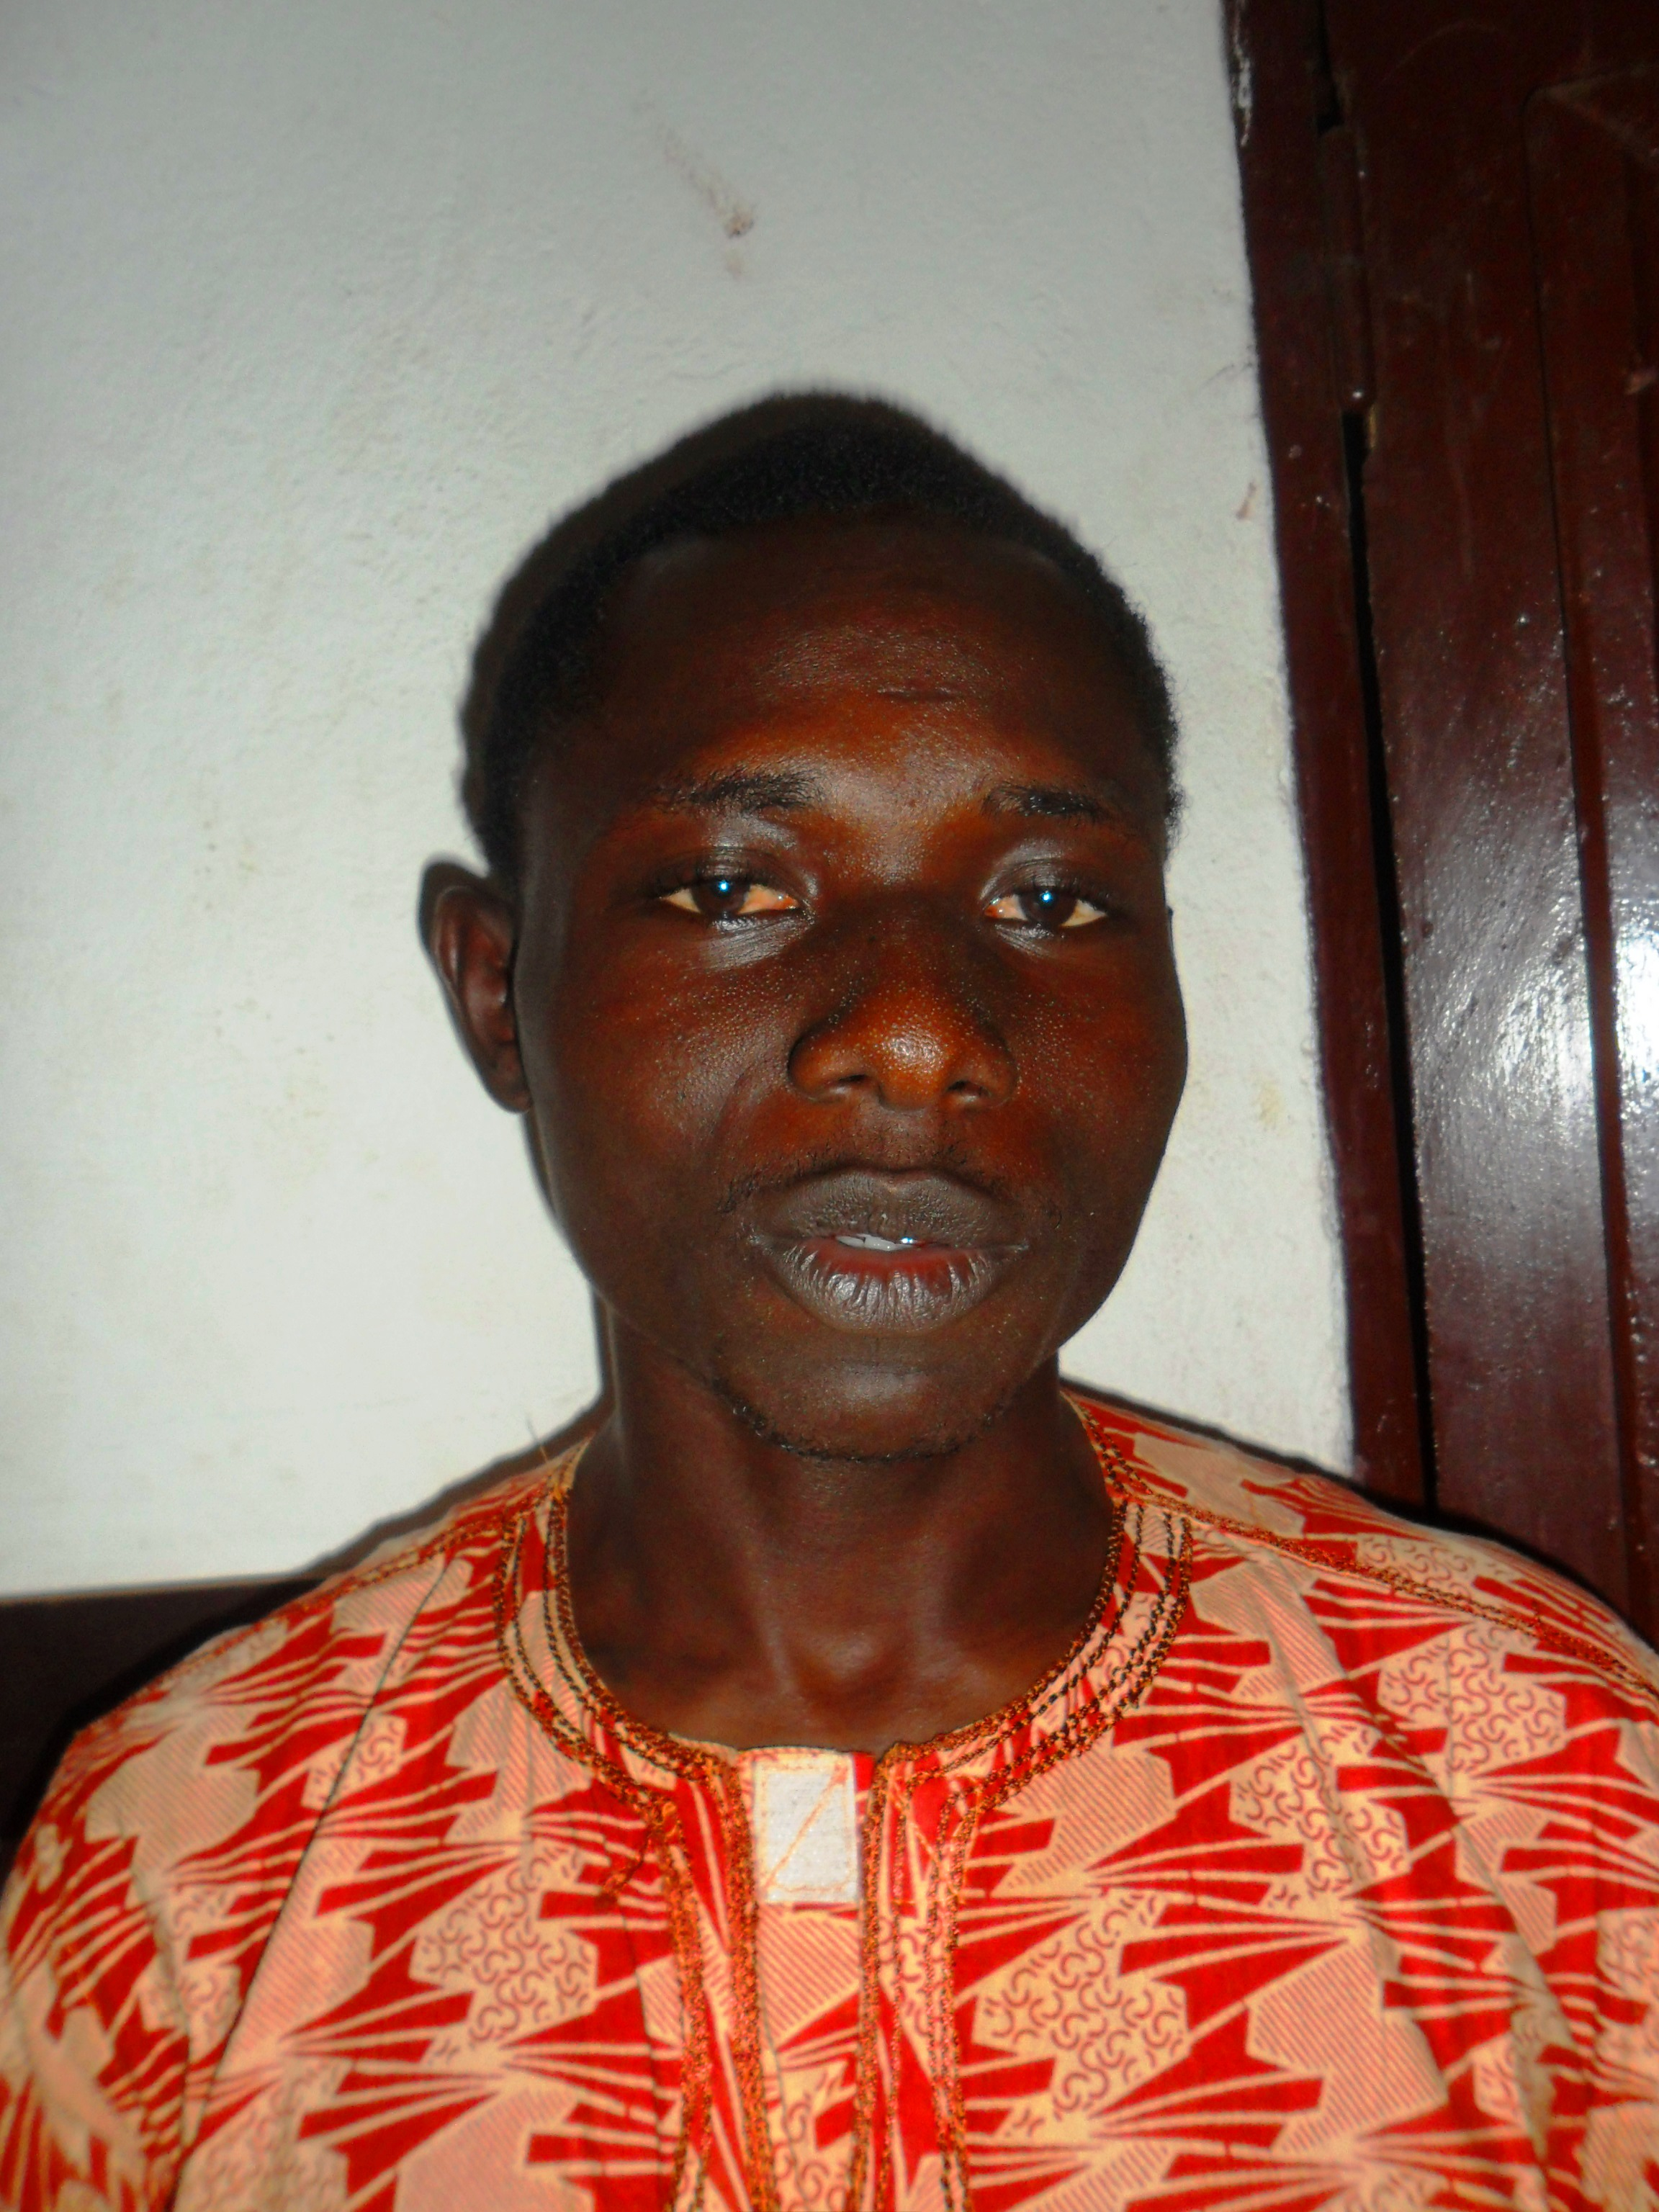 Guinea: Reporter handcuffed and beaten up by policemen